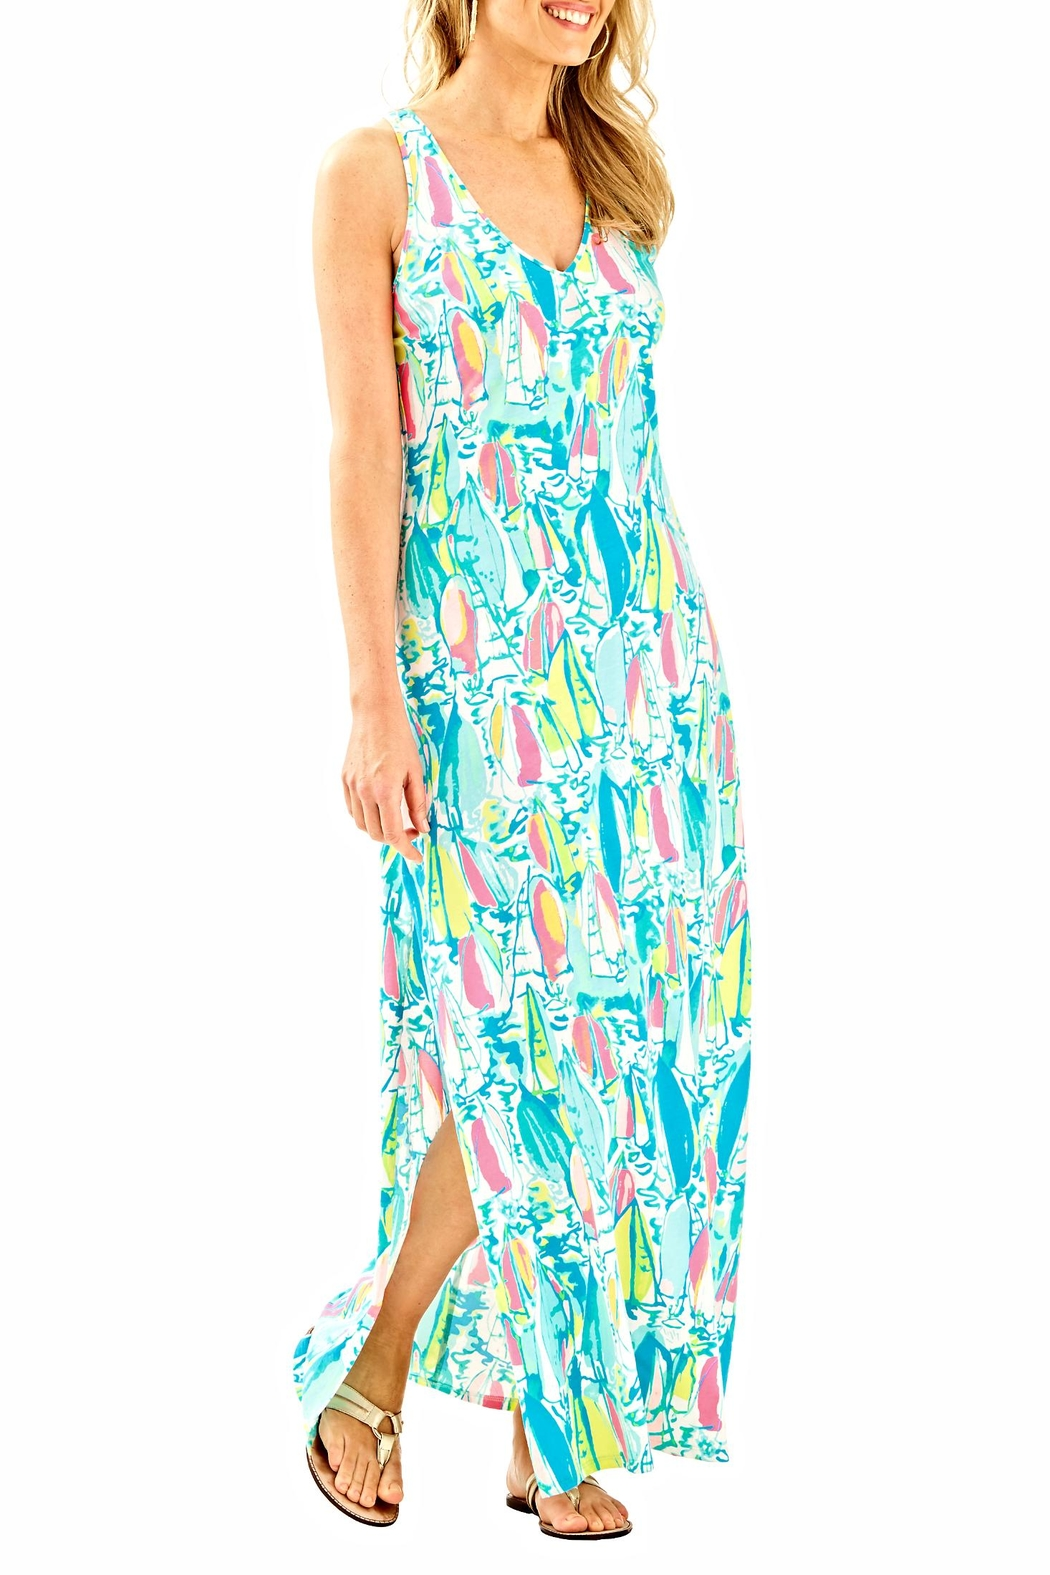 Lilly Pulitzer Maxi Side Slit Dress - Main Image